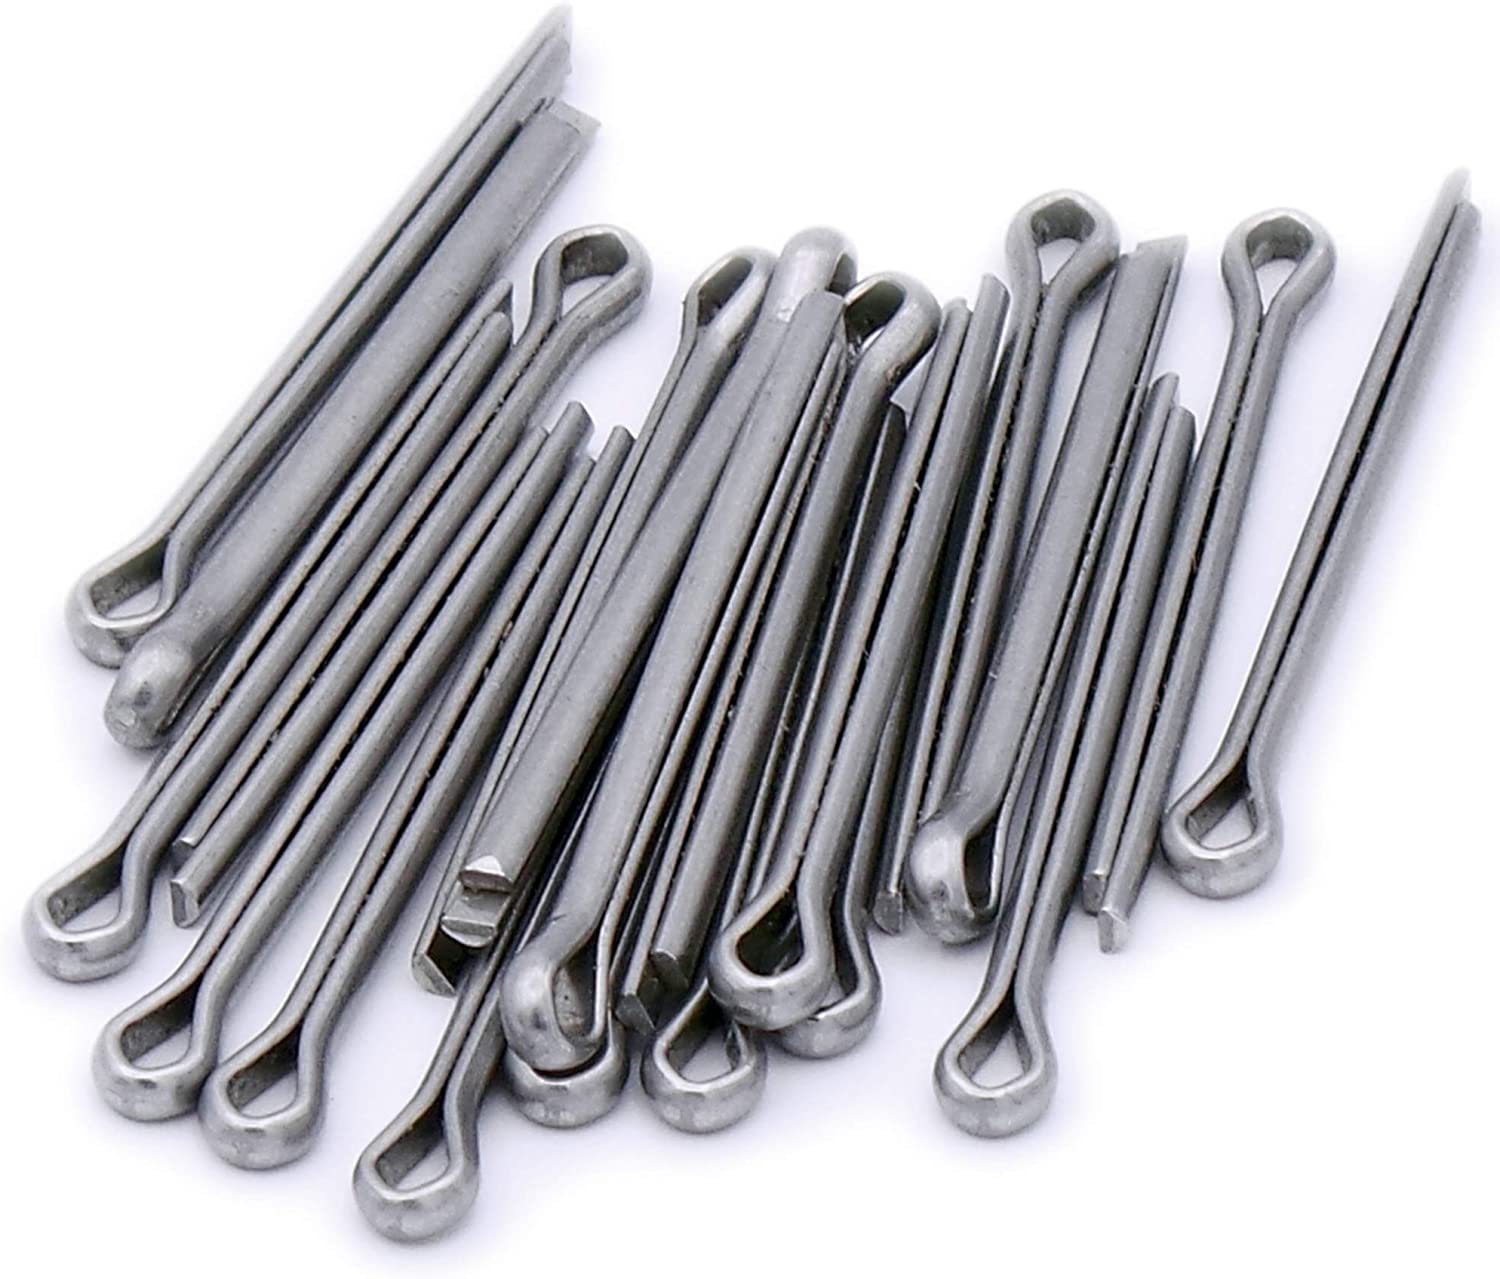 A2 Split Cotter Pin M4 4mm x 28mm Pack of 20 Stainless Steel